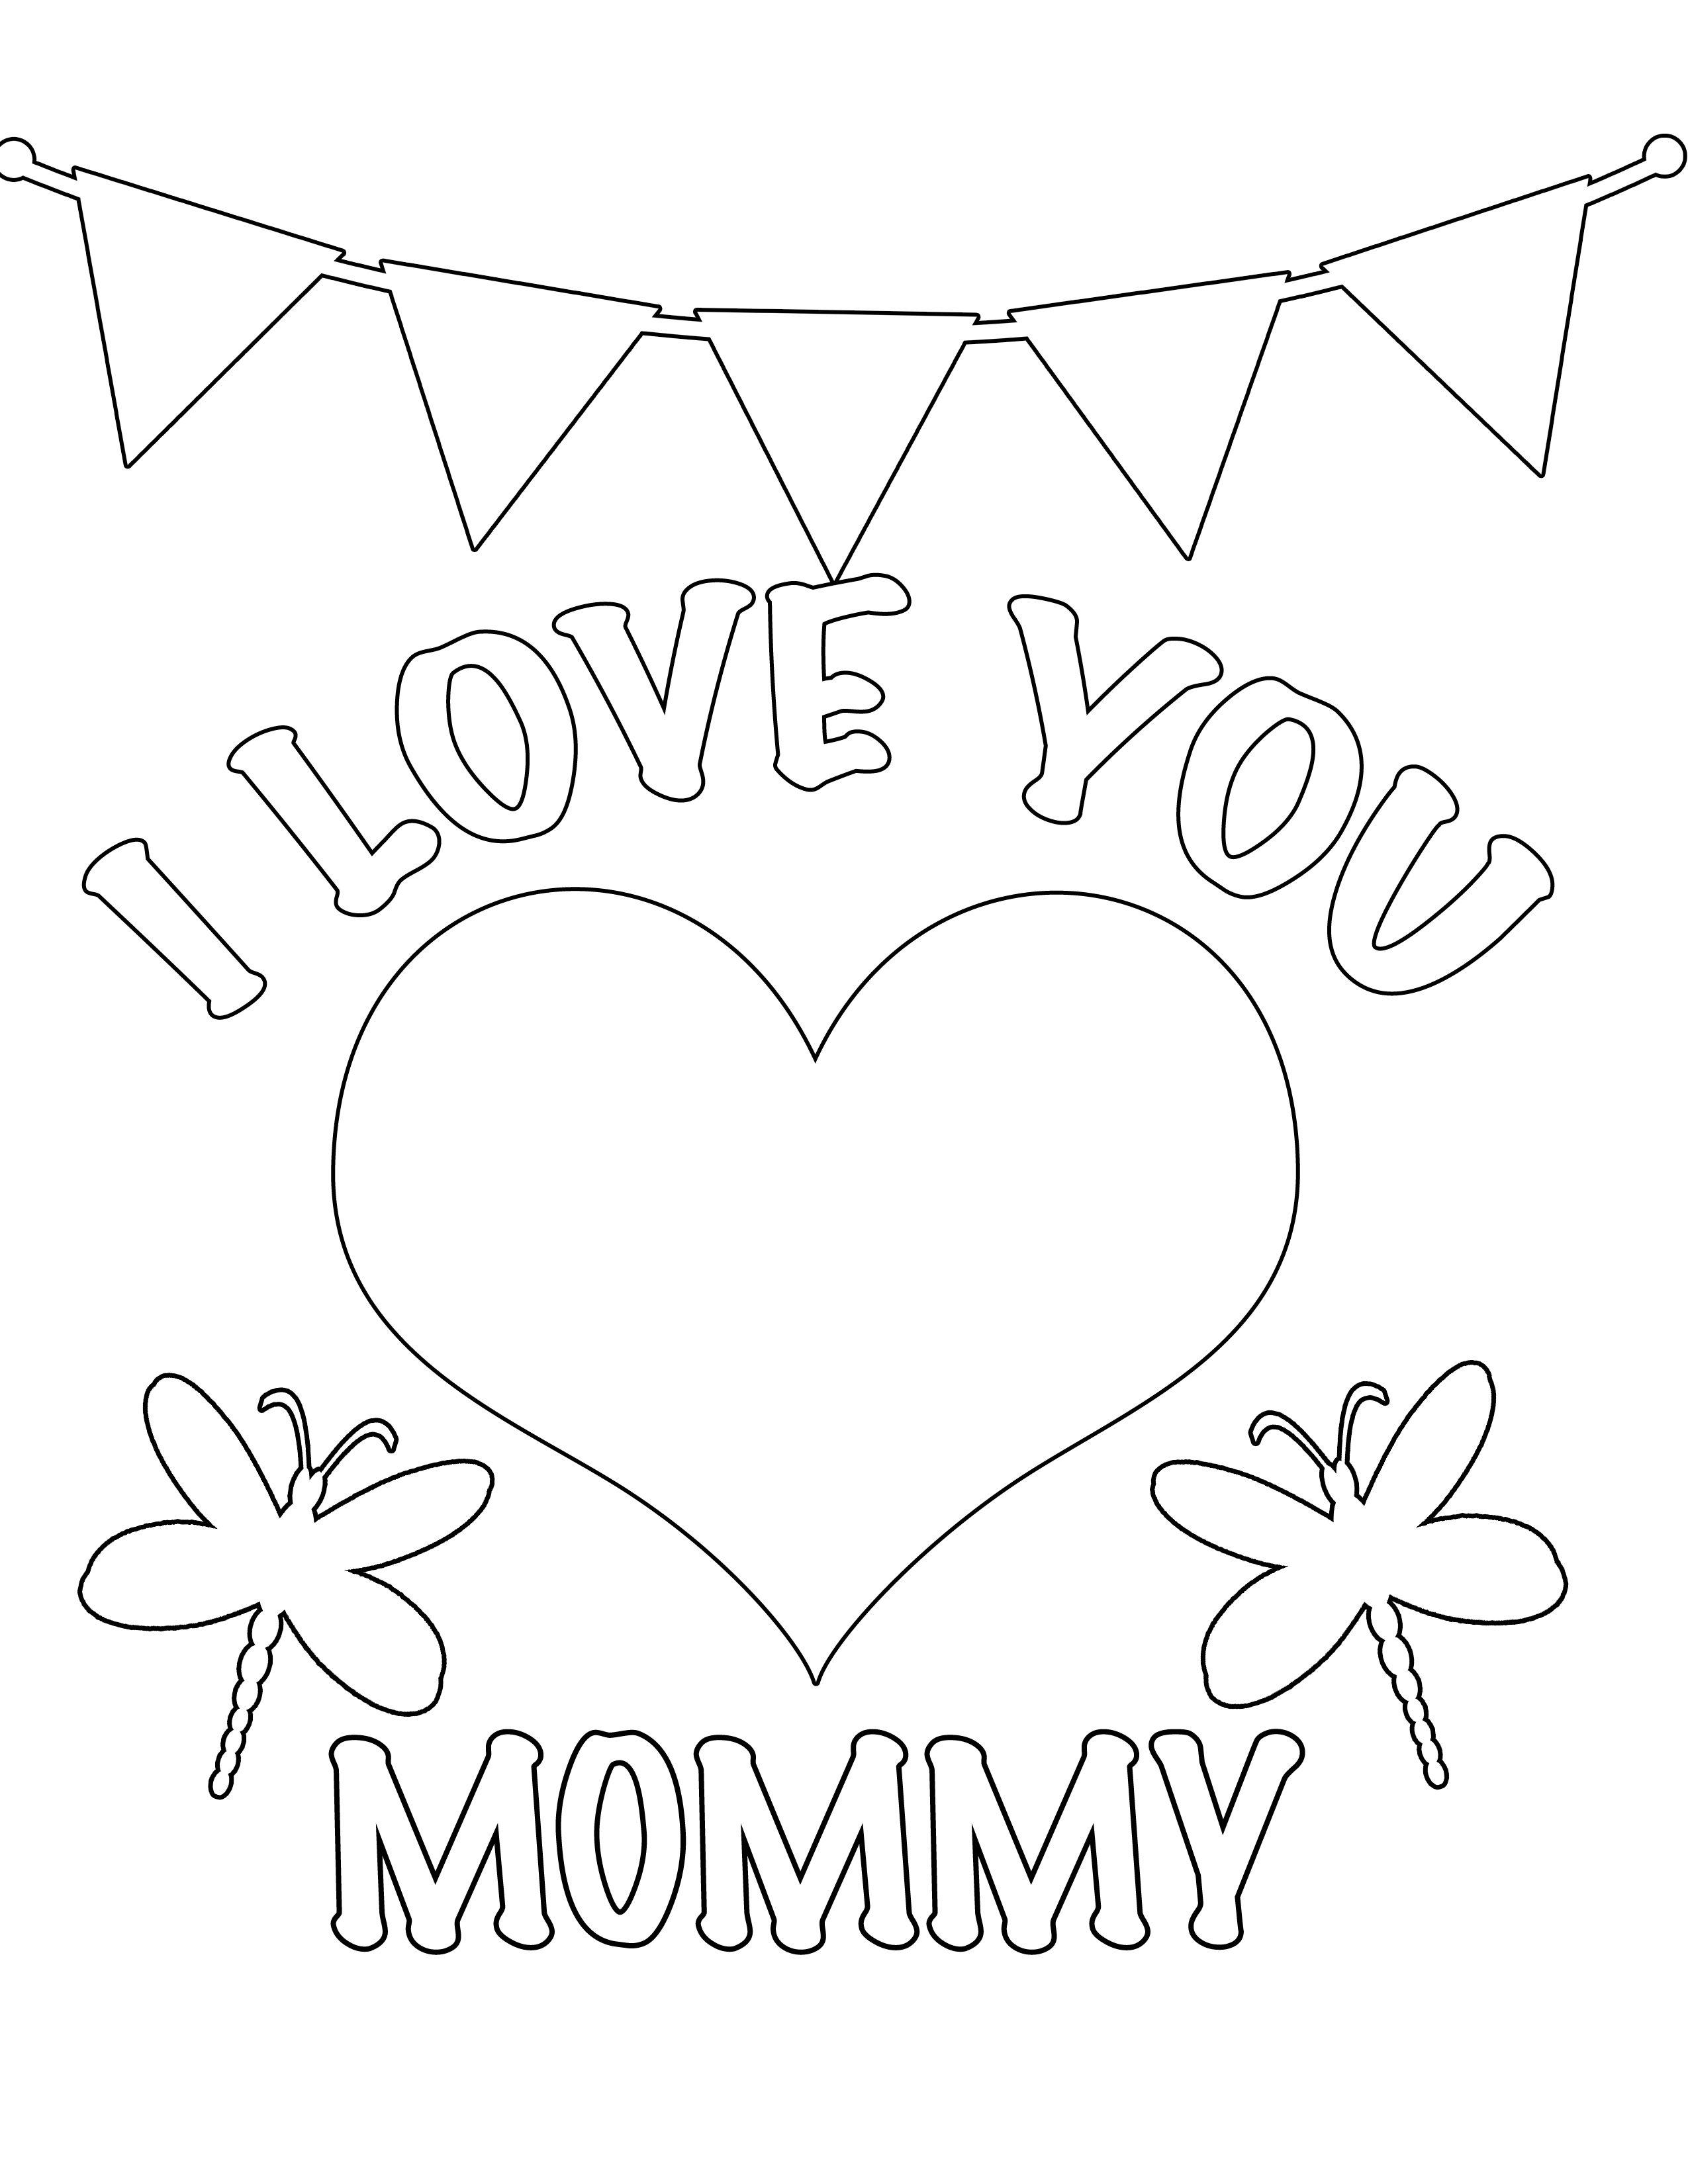 world39s best mom certificate coloring pages of of coloring pages